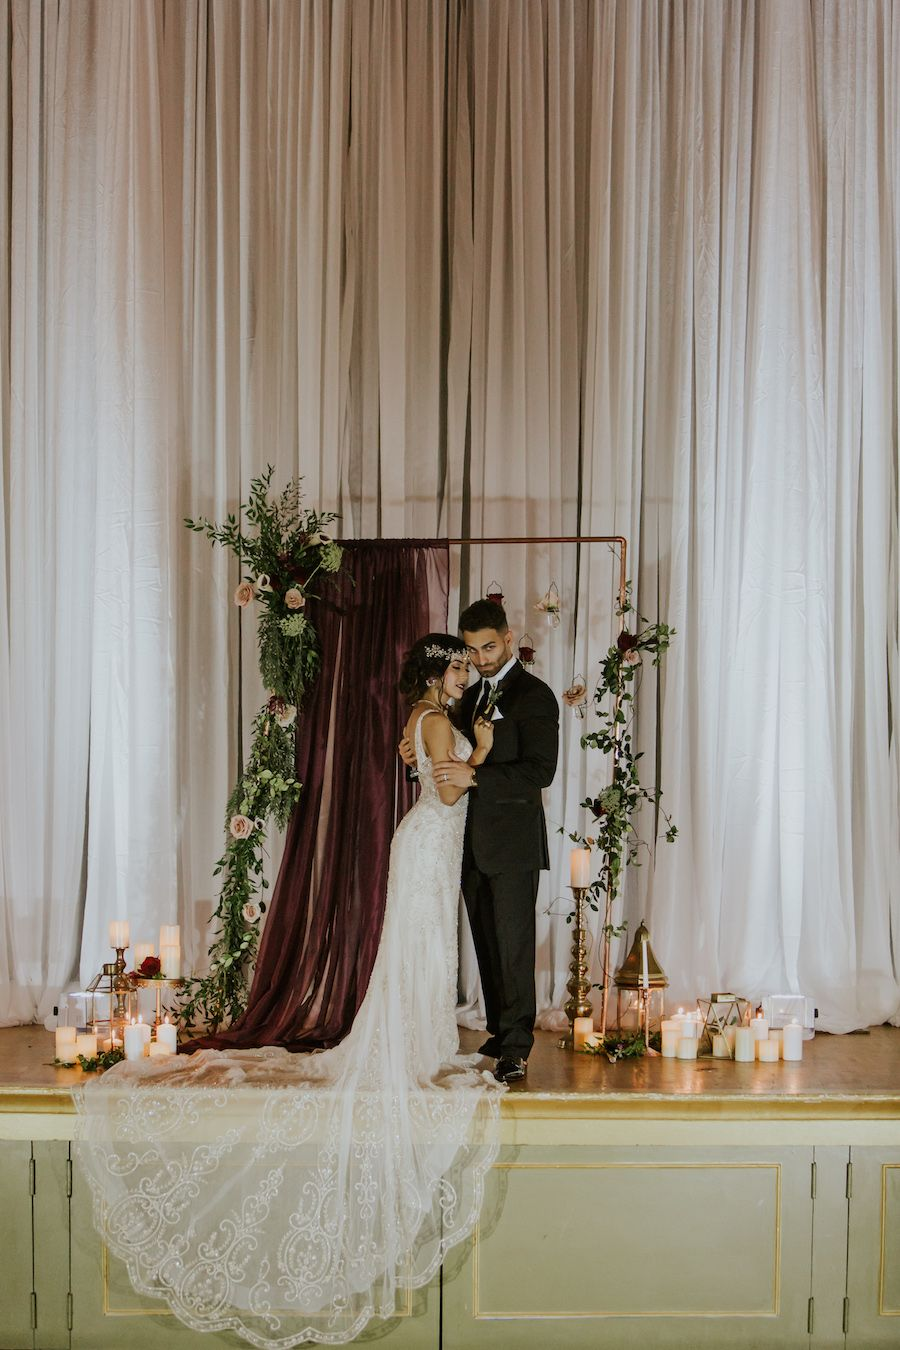 451afedb00a6 Deep Red Burgundy Wedding Ceremony Decor with Candles and Hanging Floral  Rose Draped Altar Backdrop | Romantic Vintage Glam Wedding | Tampa Bay  Wedding ...